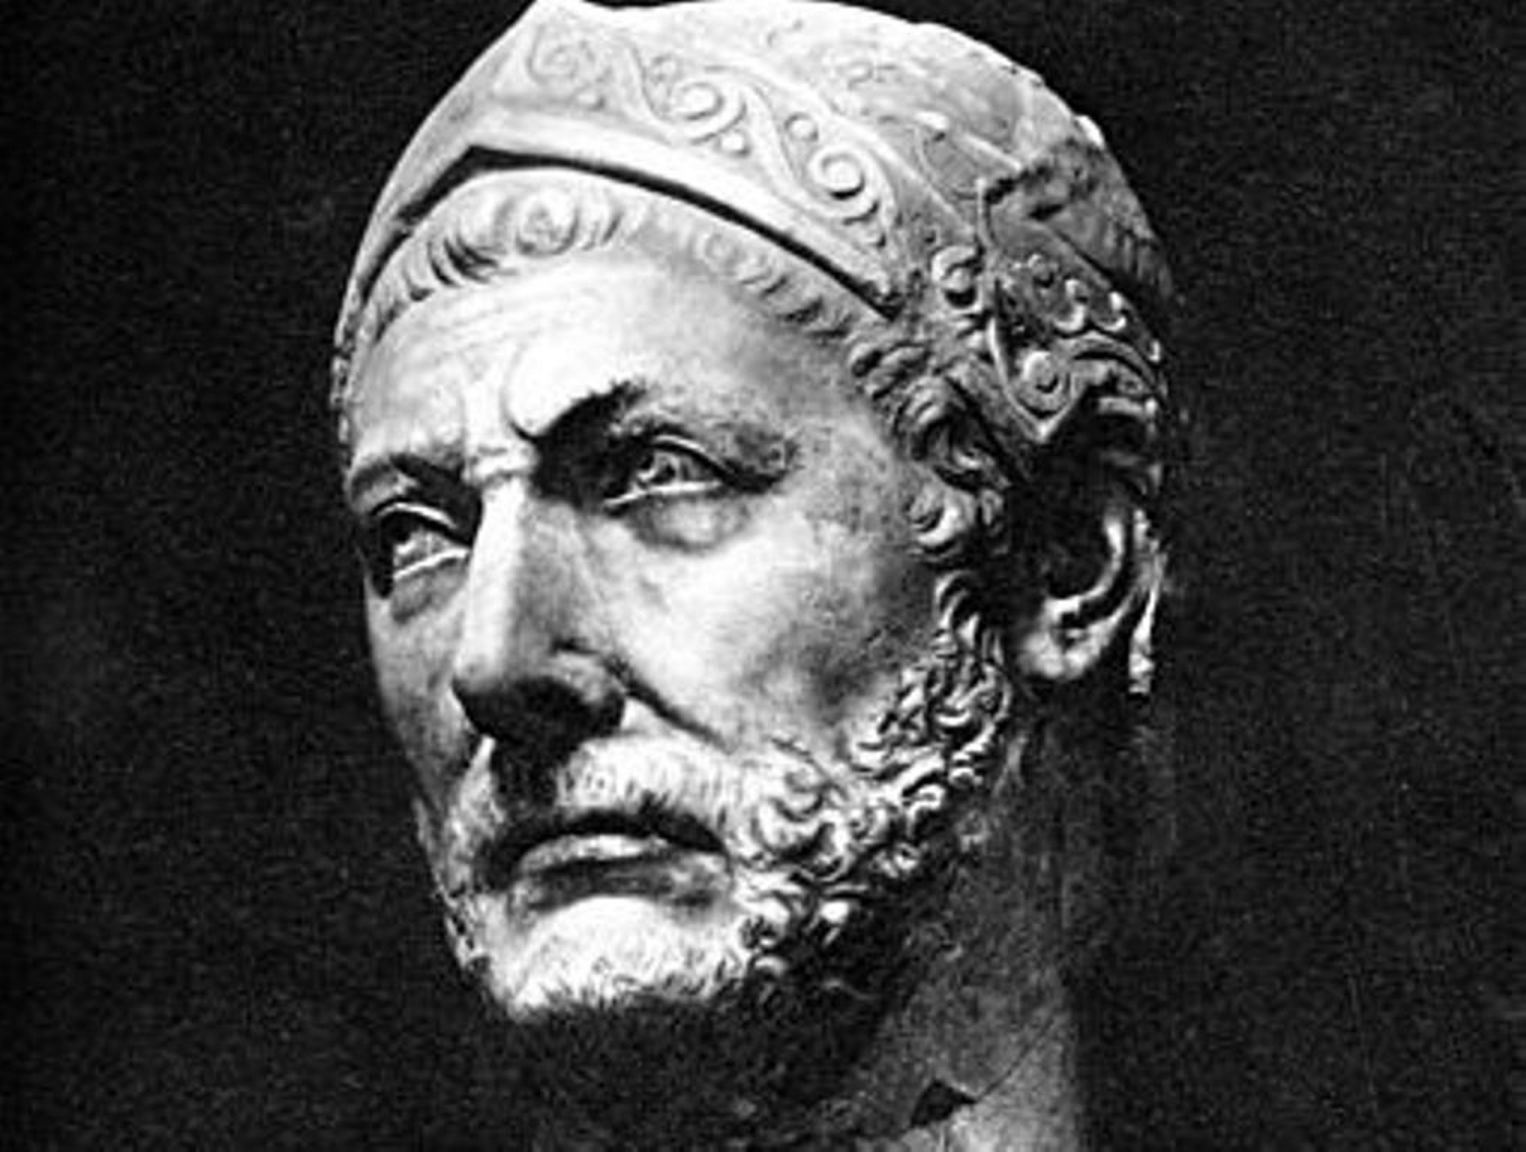 a biography of general hannibal of carthage Hannibal (general) (247-183 bc), carthaginian general, son of hamilcar barca, whose march on rome from spain across the alps in 218-217 bc remains one of the greatest feats in military history before starting, the boy vowed eternal hatred for rome, the bitter rival of carthage.